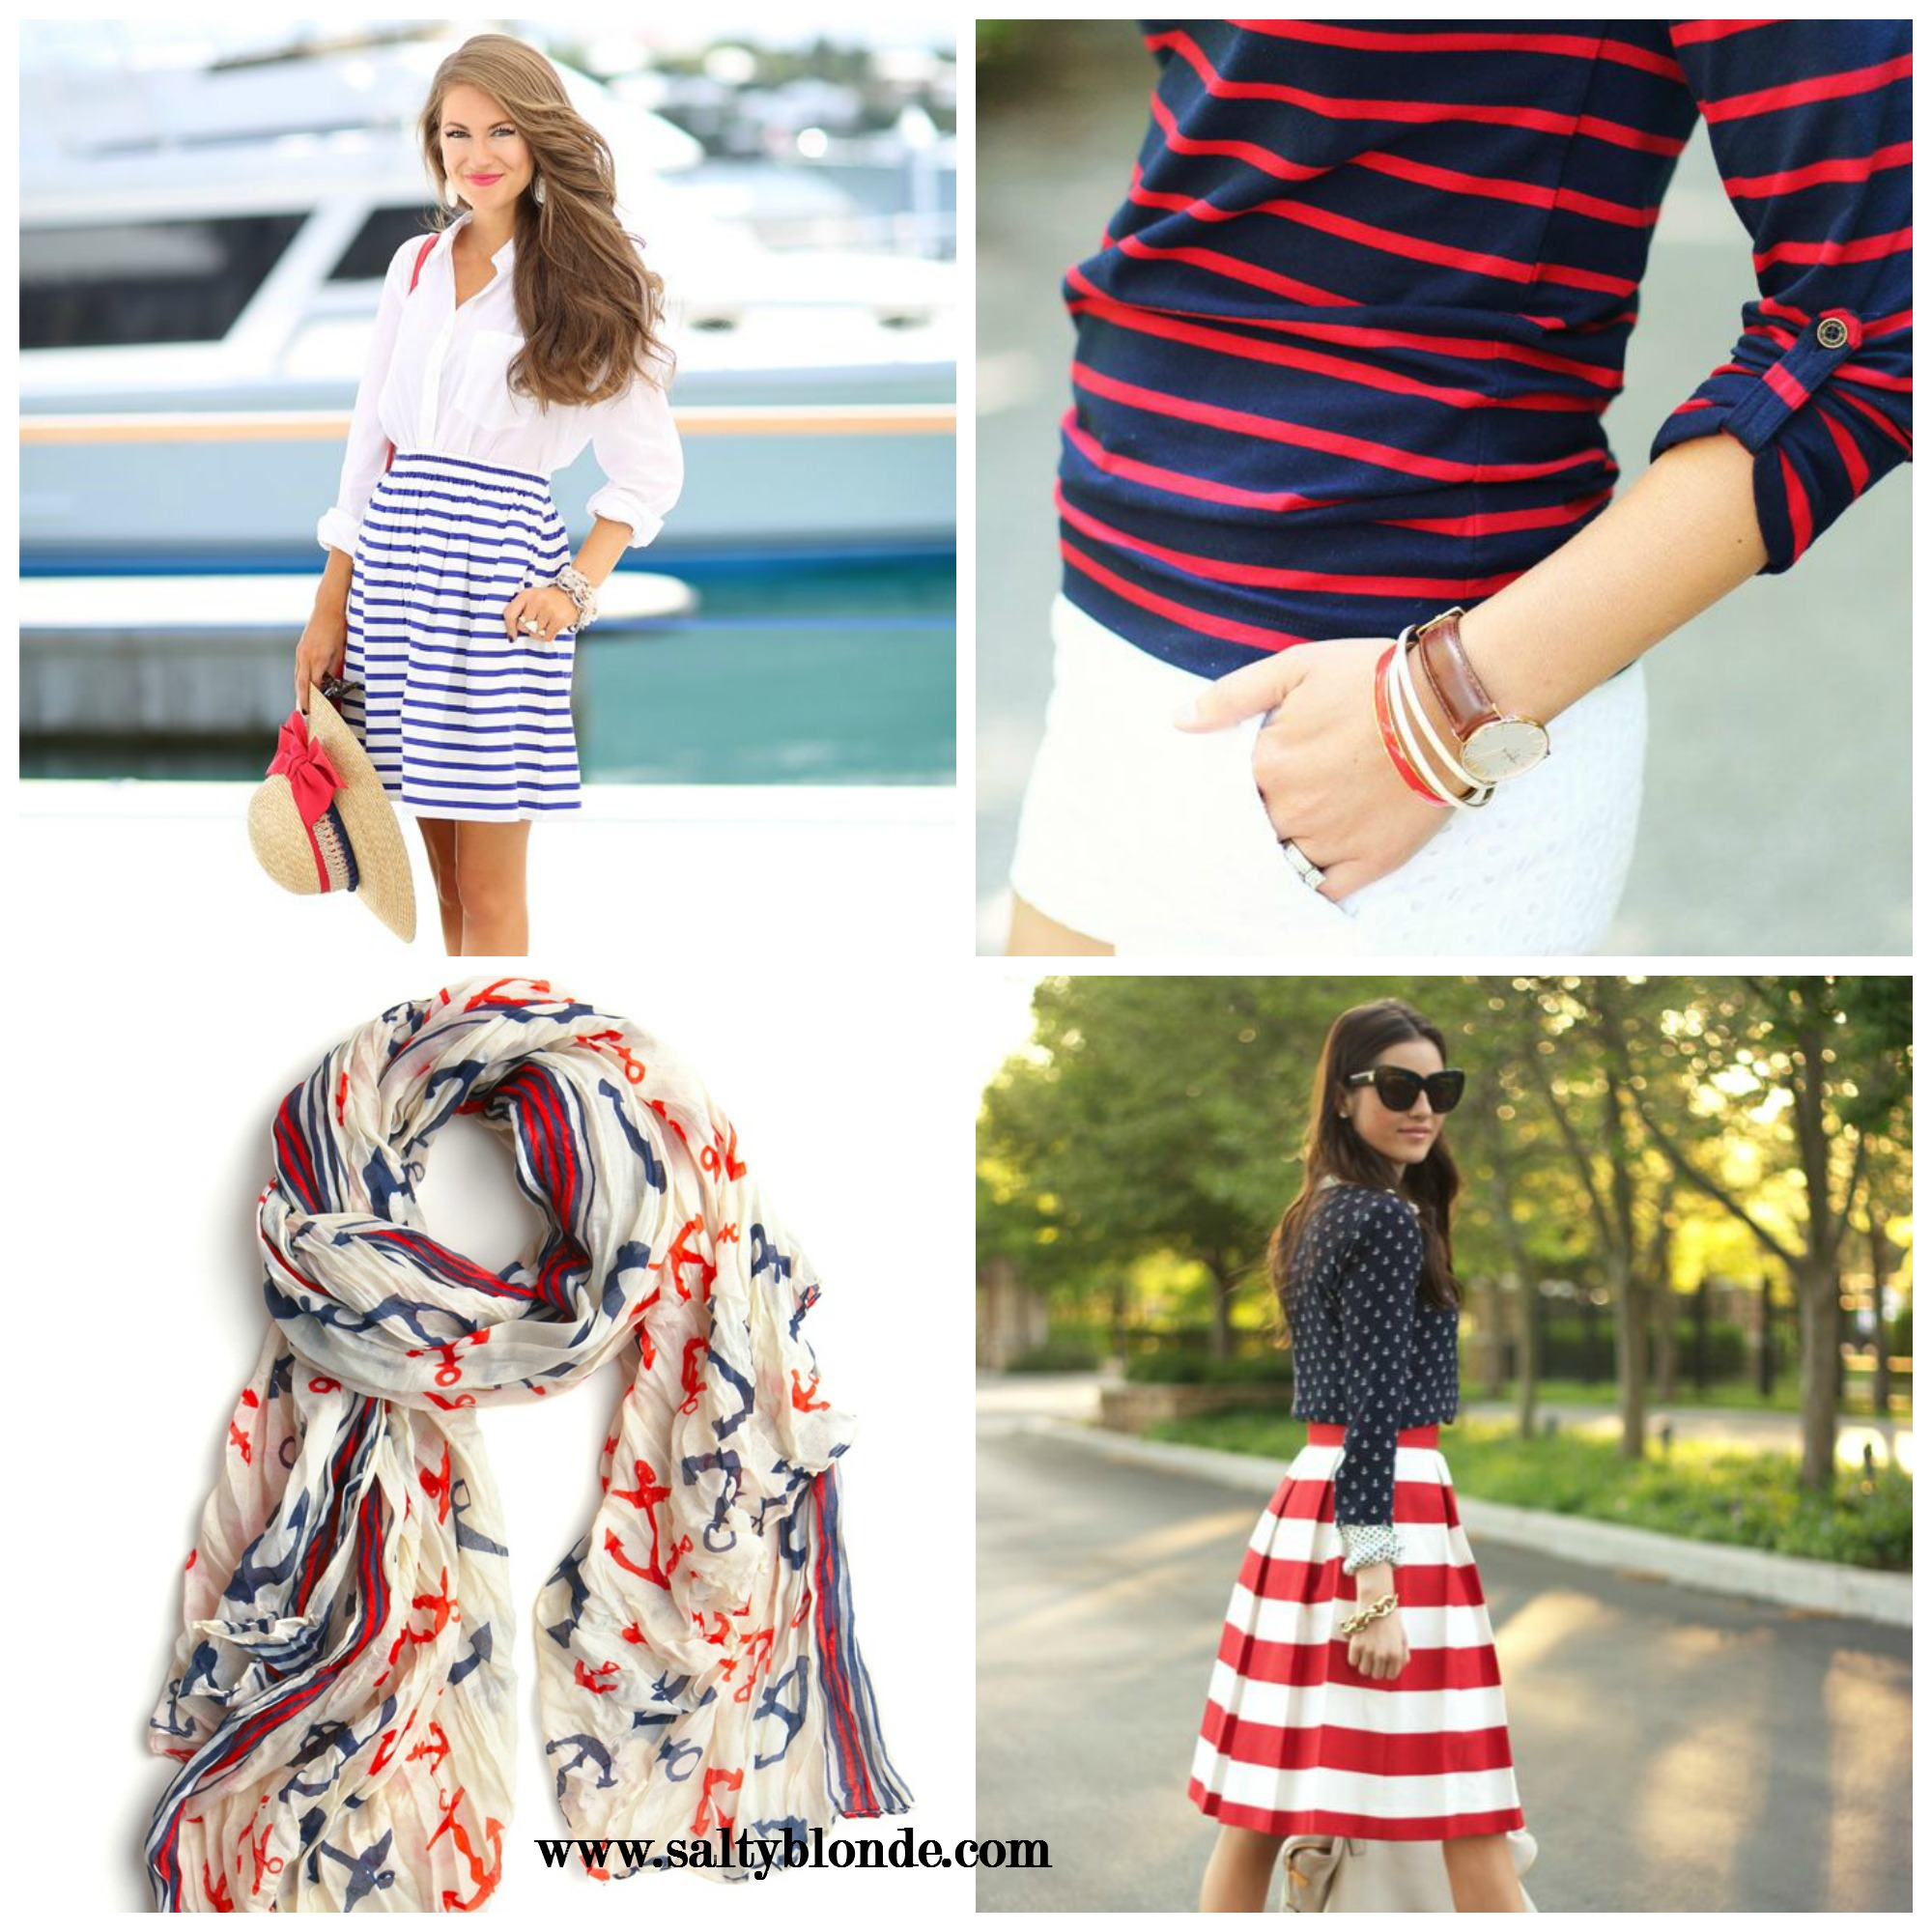 Salty Blonde's July Fourth Outfit Ideas